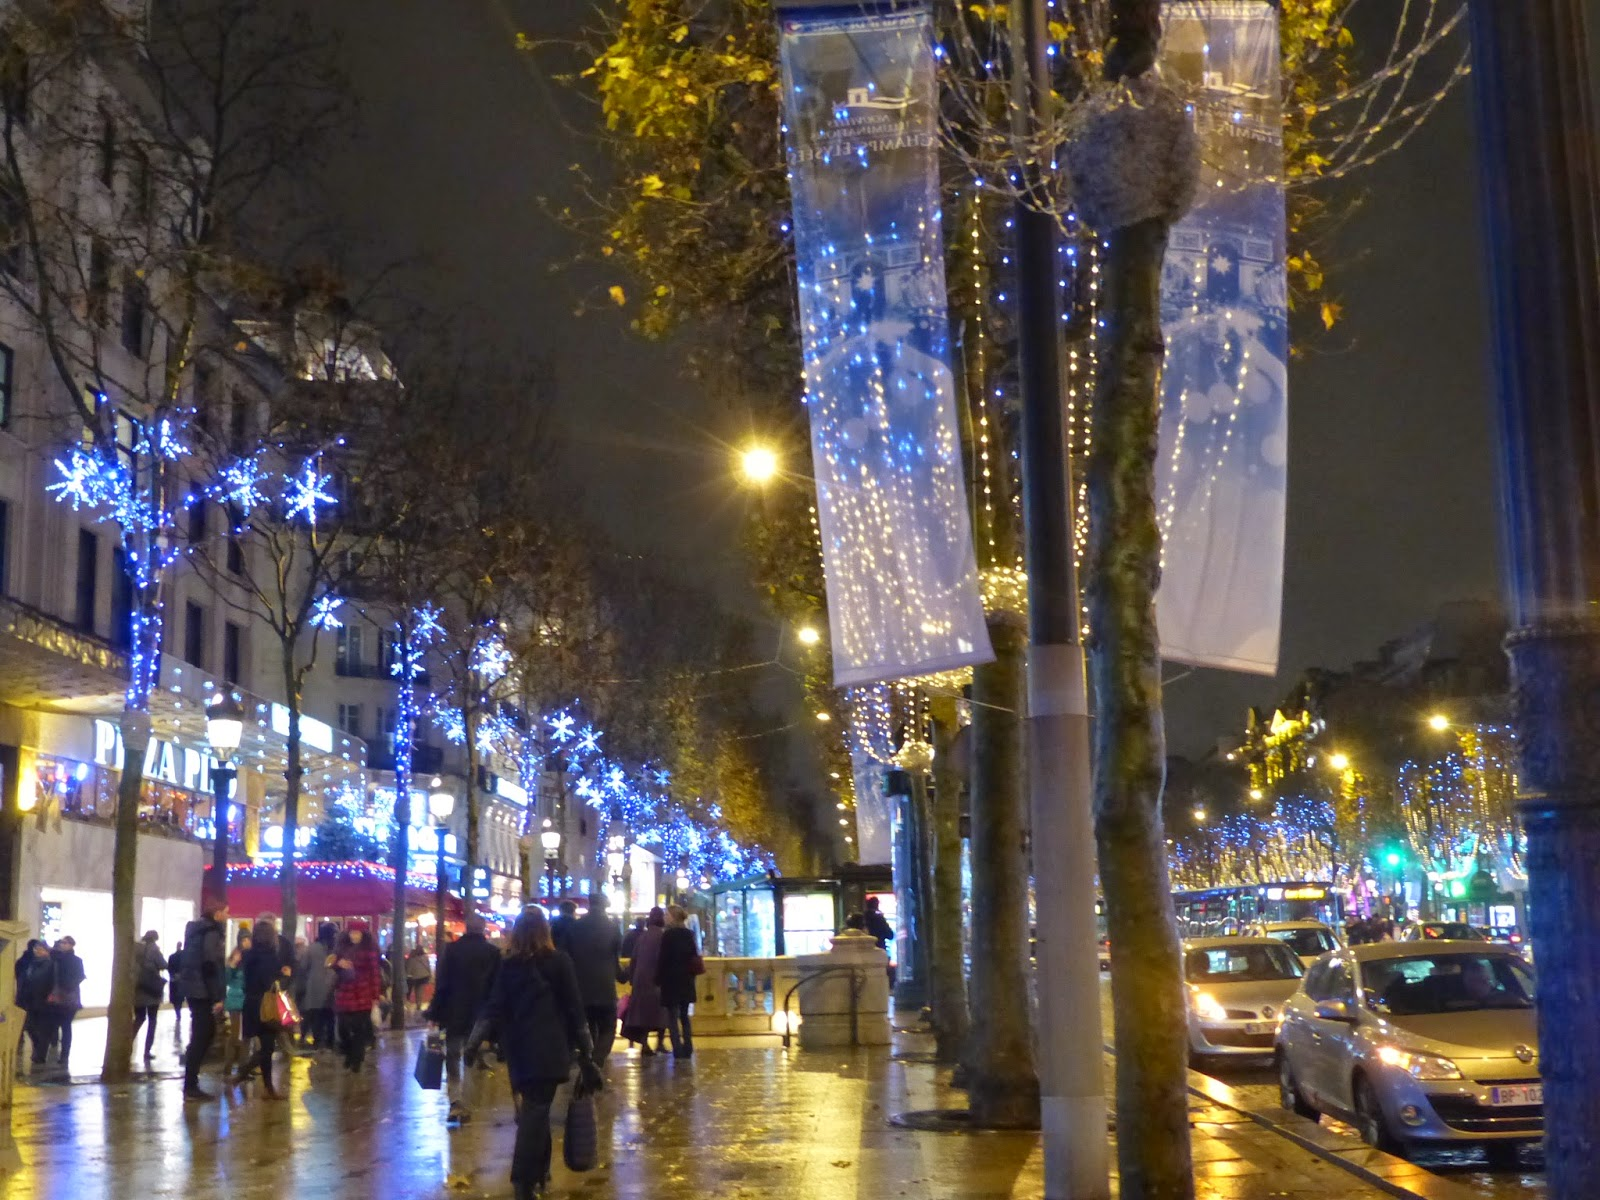 Paris ses illuminations et ses vitrines de no l en 2014 le petit monde de - Illumination paris 2014 ...